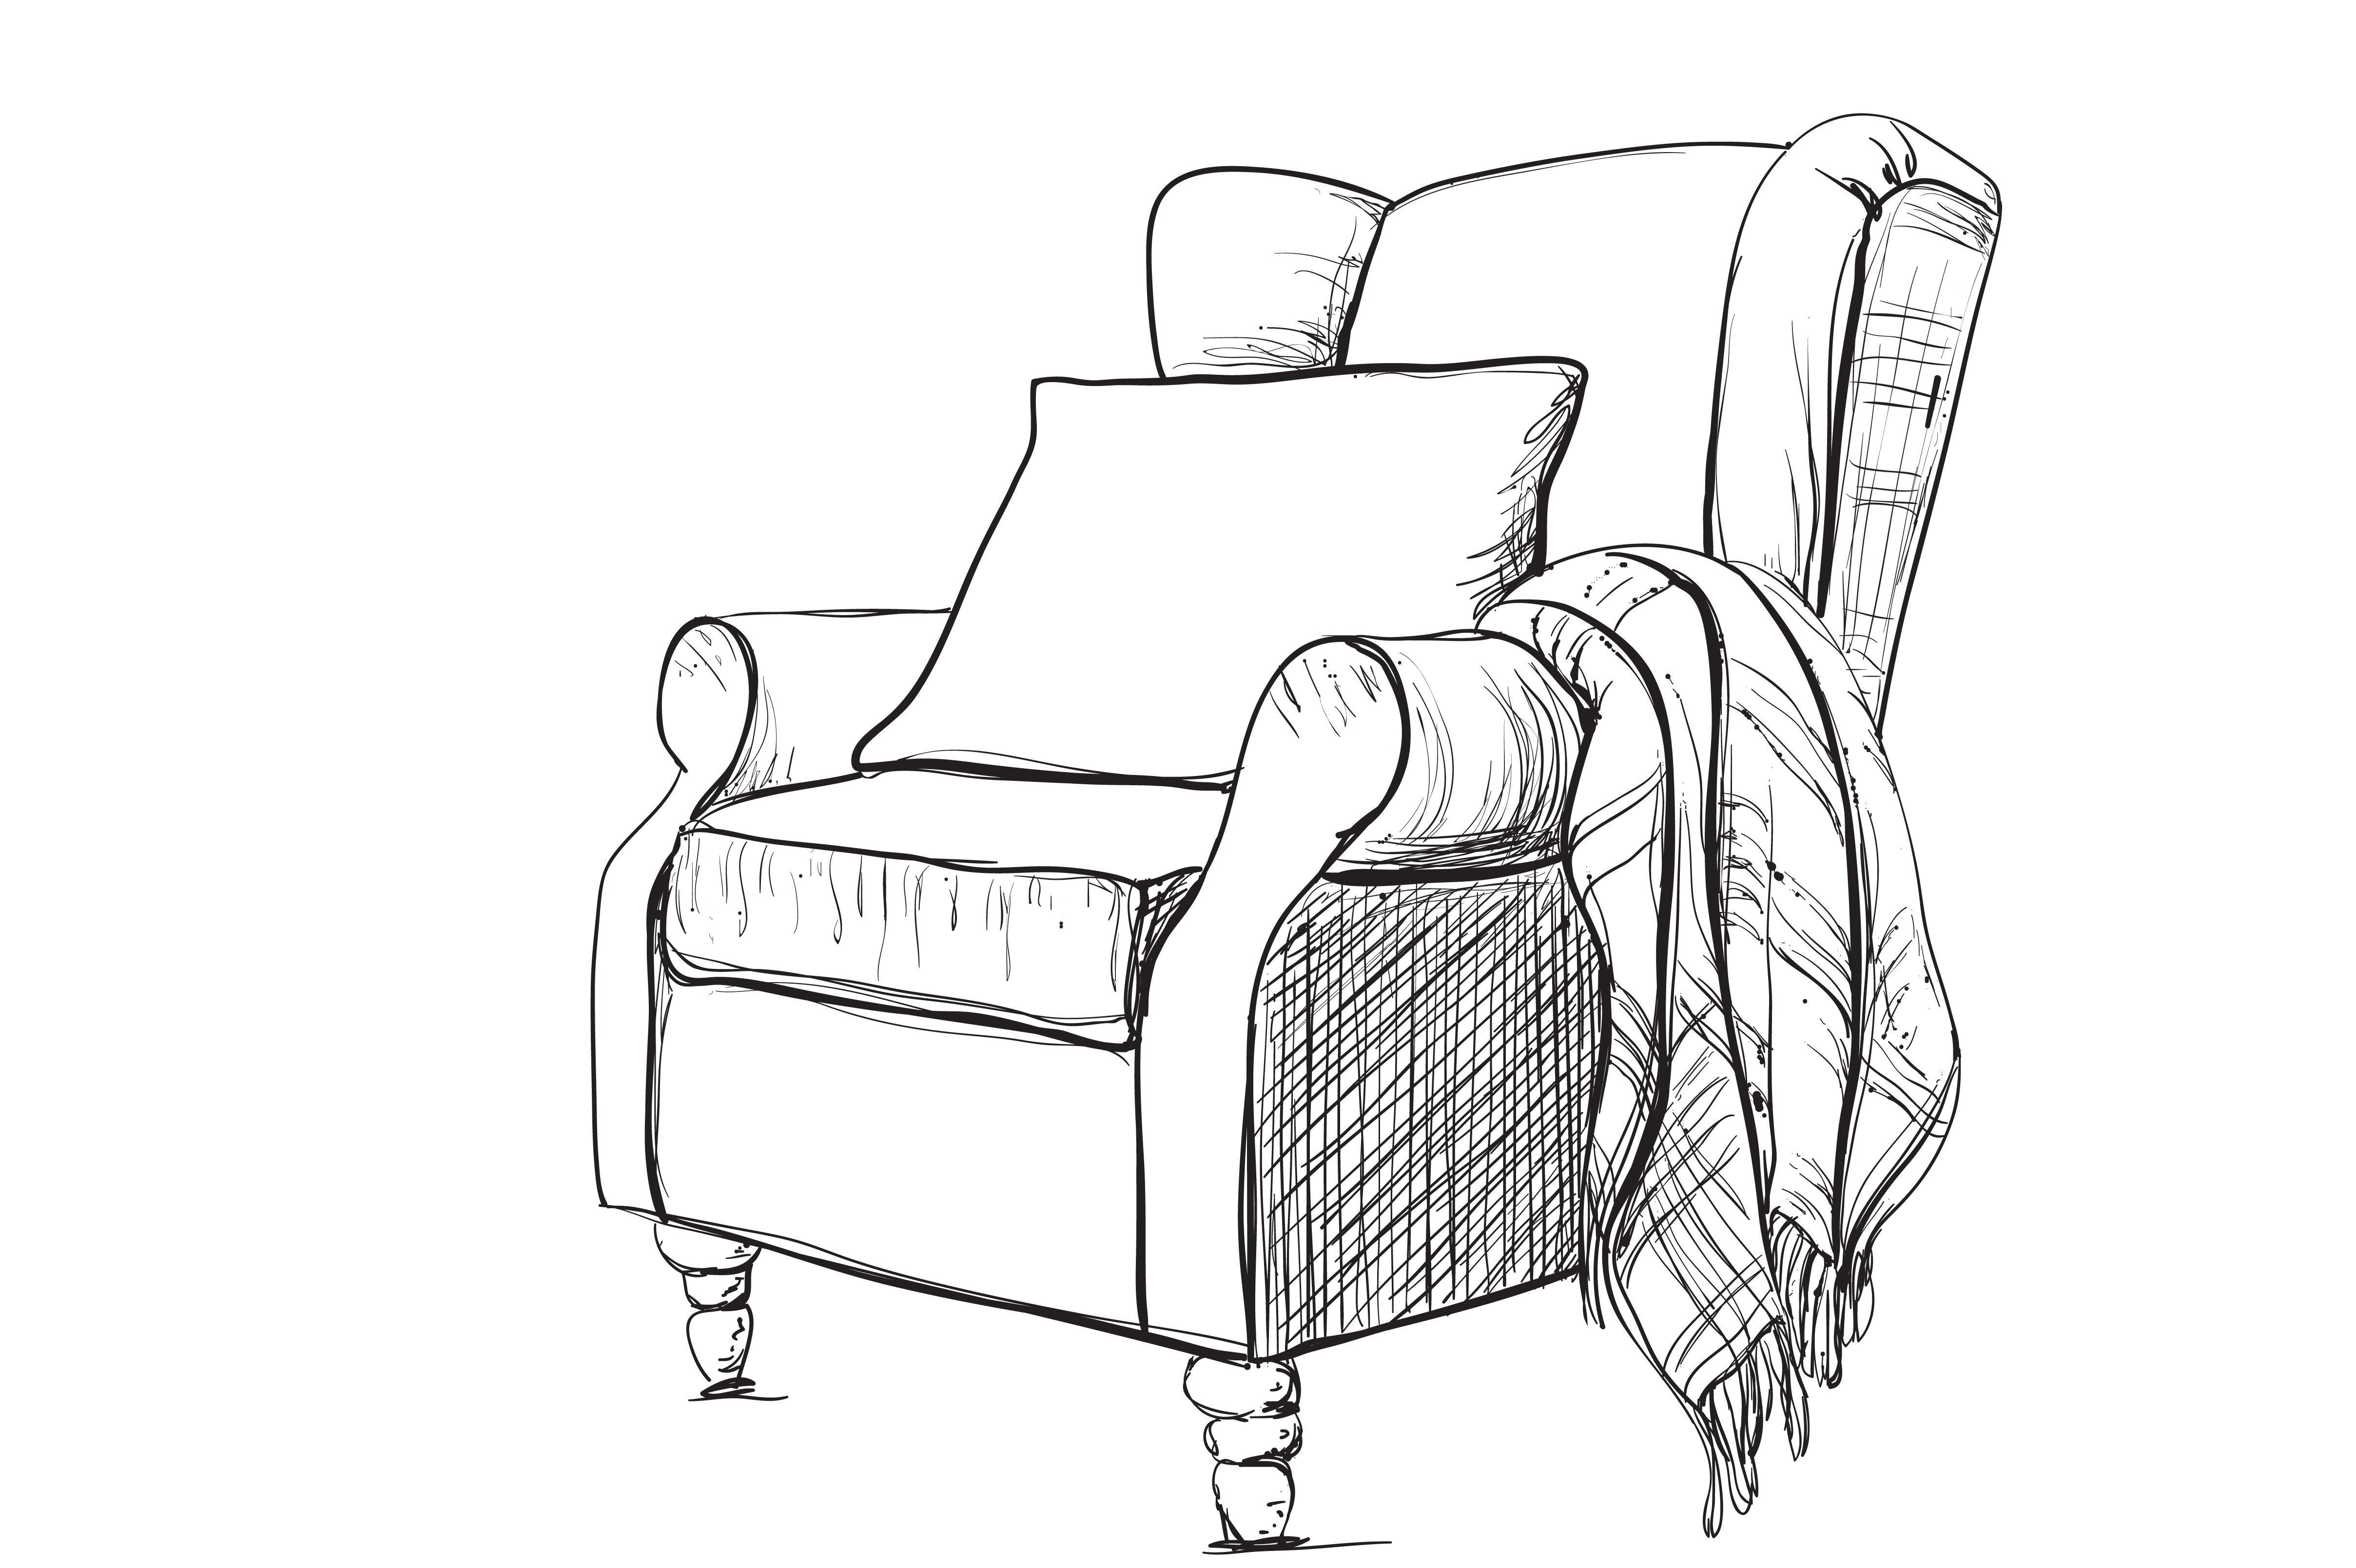 Web Design Armchair Drawing Armchair Drawing Armchair Top View High Back Armchair R In 2020 Interior Design Sketches Furniture Design Sketches Drawing Furniture